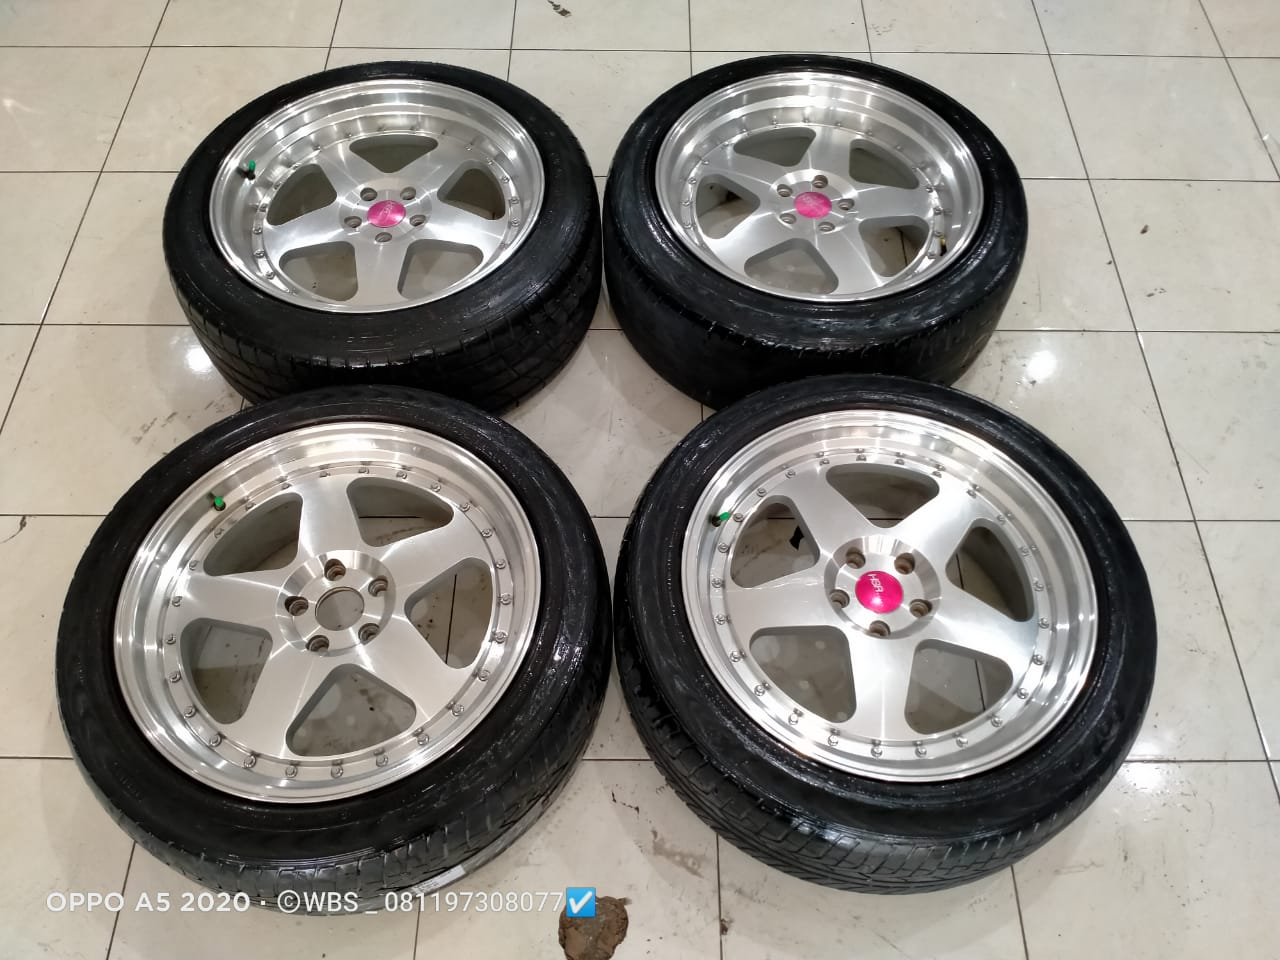 di jual velg hsr type joy ring 20×8,5/9,5 pcd 5×114 offset 45 velg only